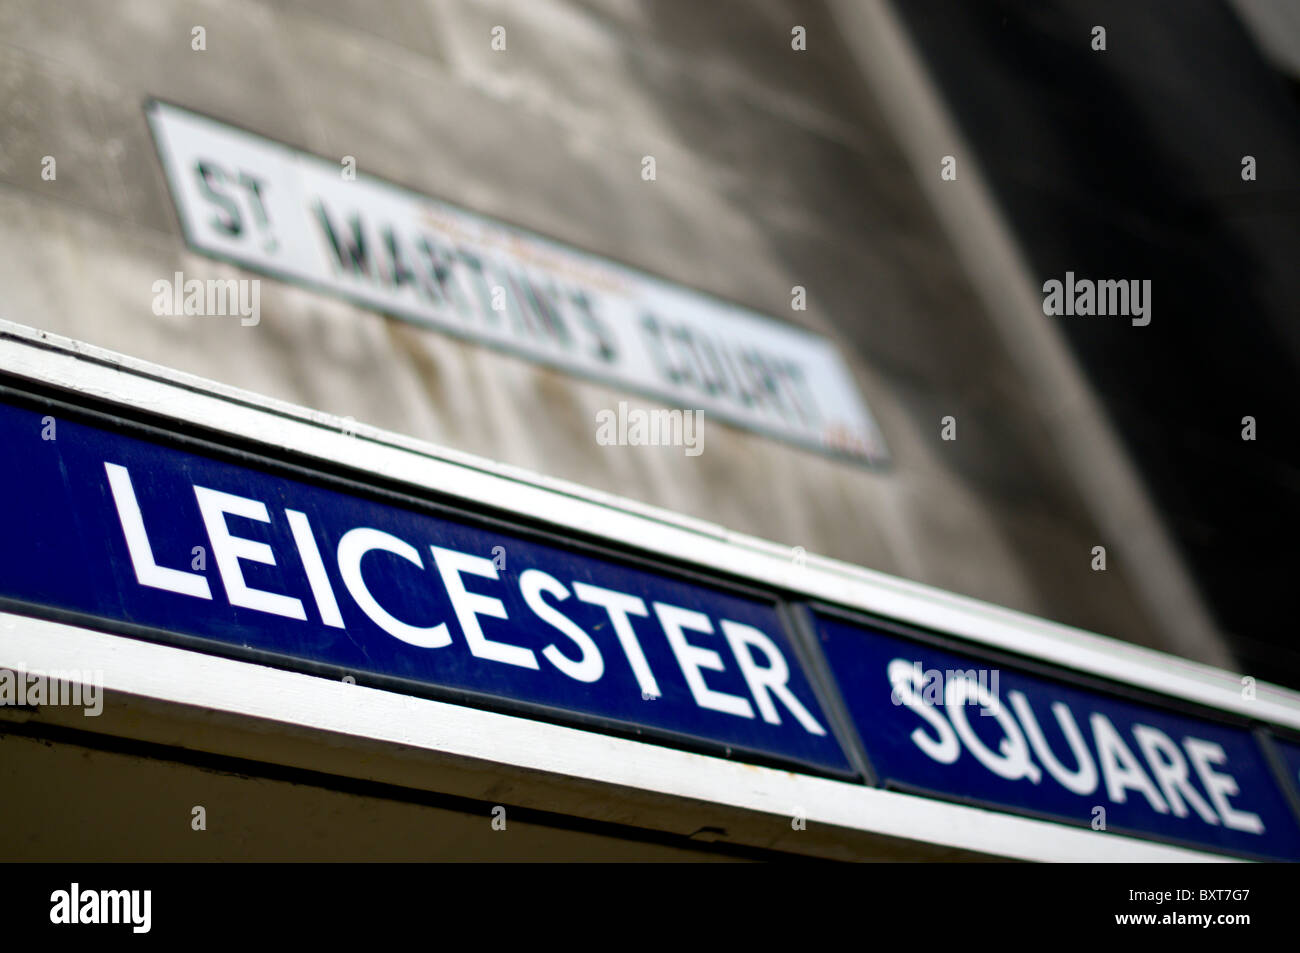 Leicester Square tube station - Stock Image